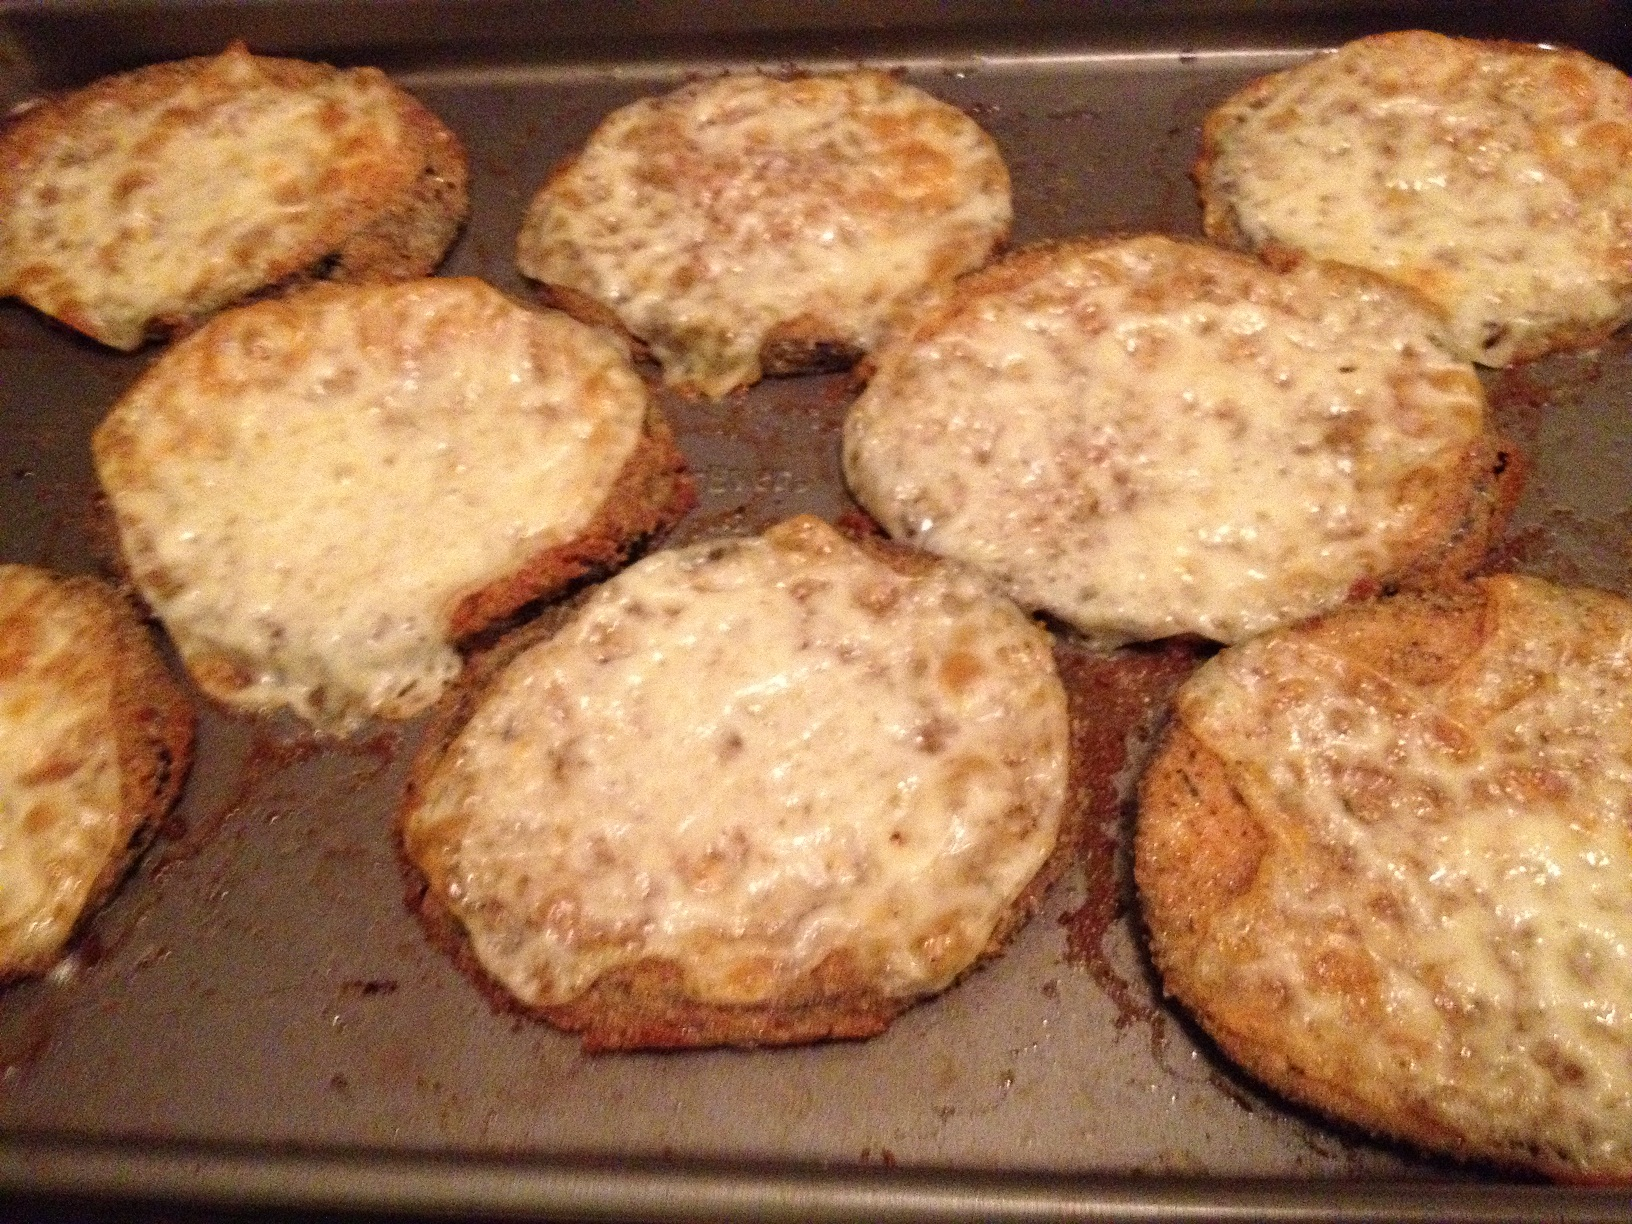 Cheese all bubbly on the eggplant, fresh out of the oven.